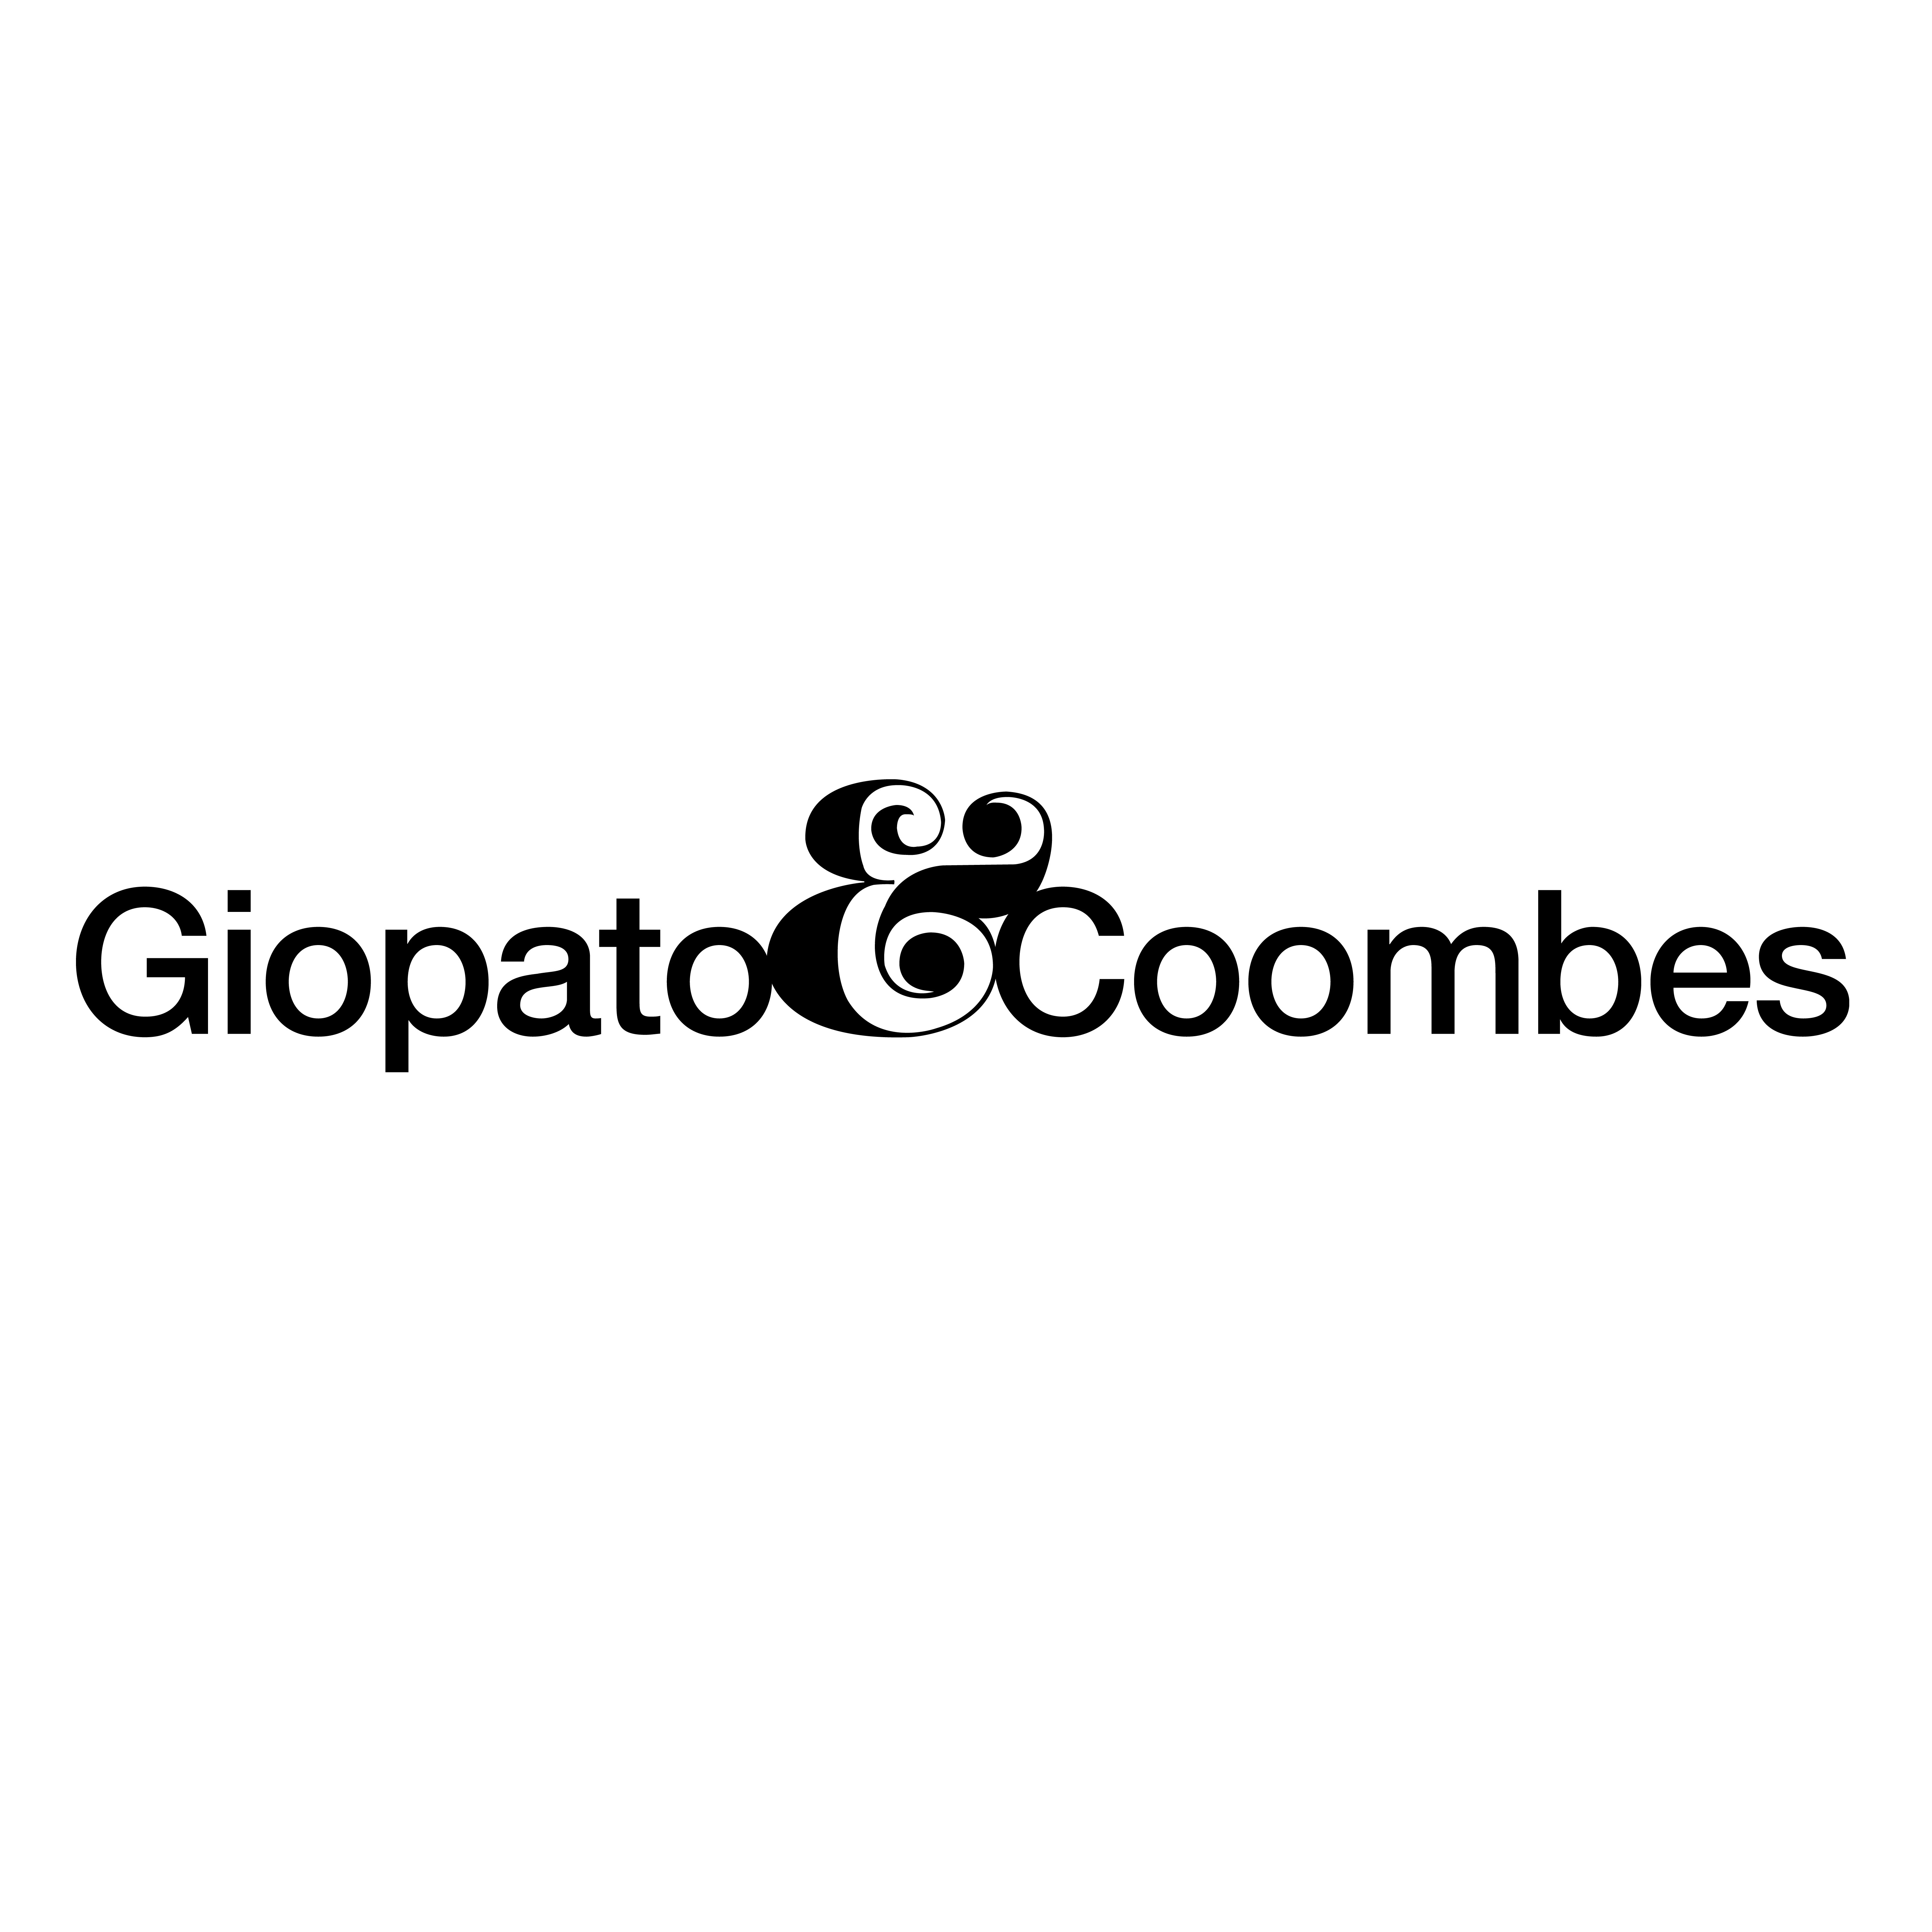 Giopato & Coombes